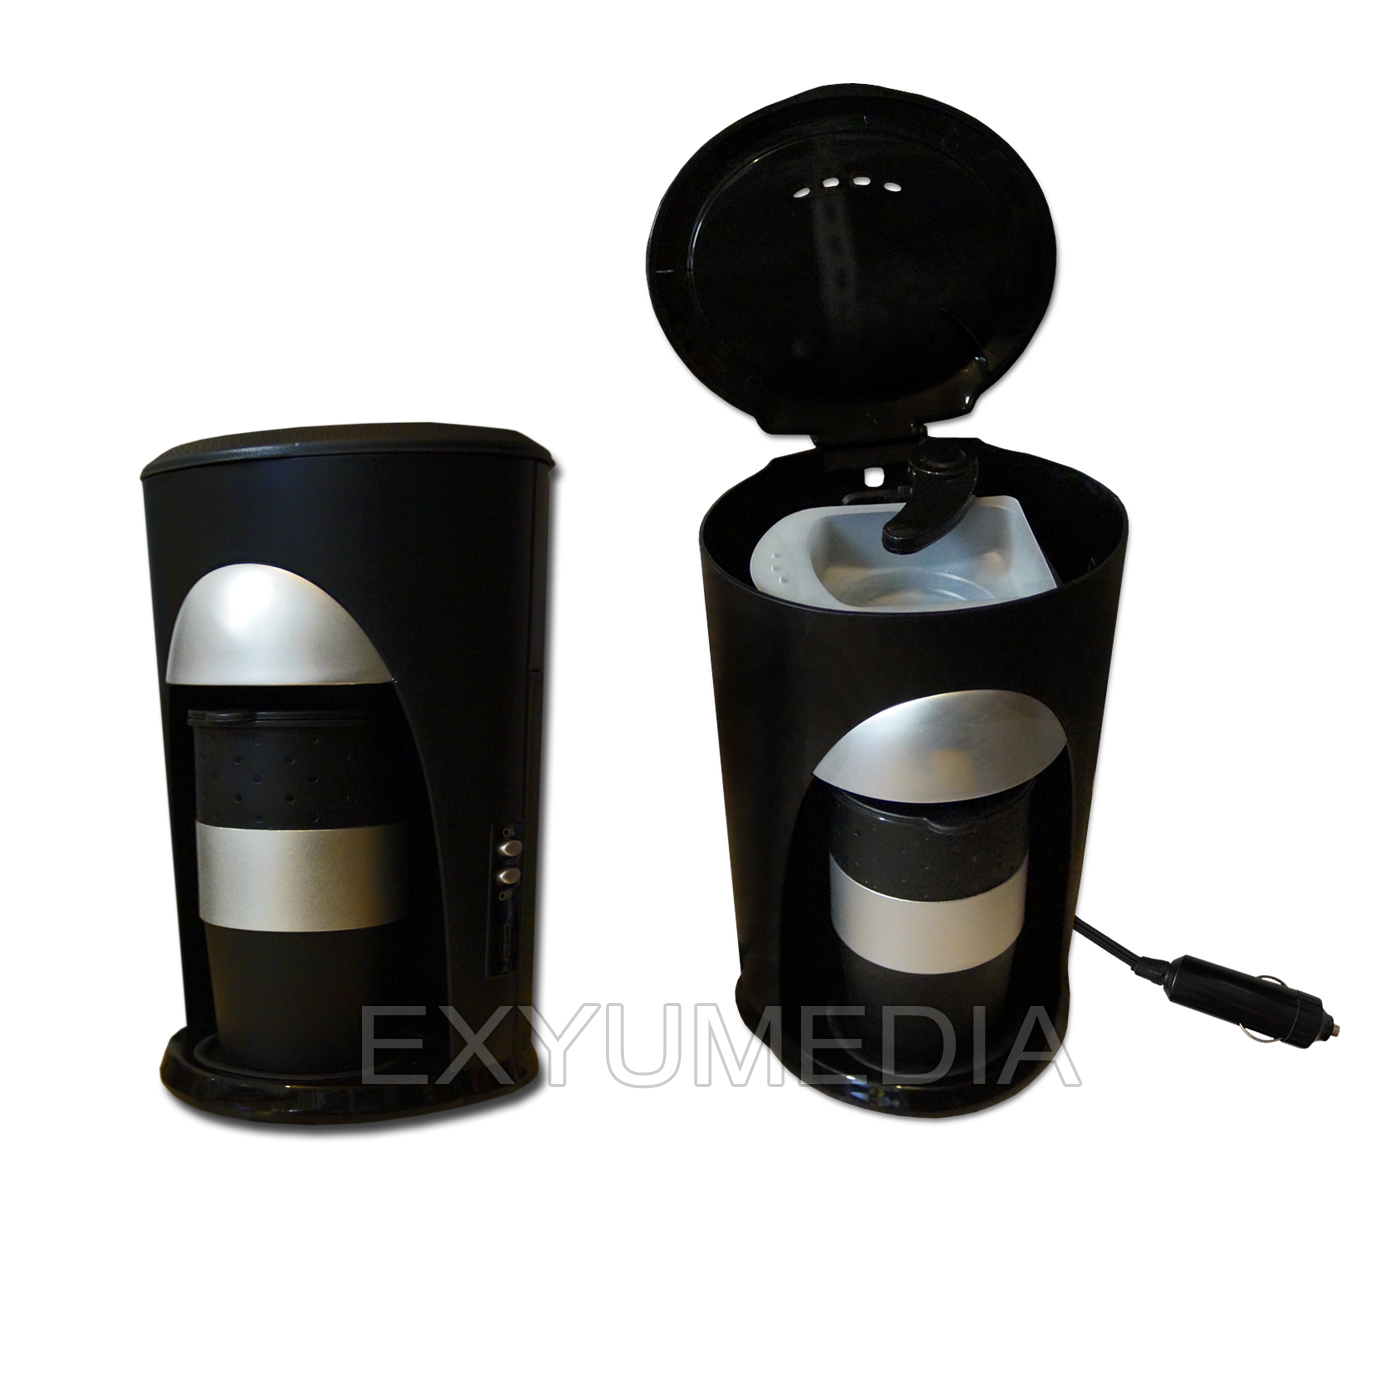 12v pad reise kaffeemaschine 2 becher auto kaffee automat 12 volt fernfahrer. Black Bedroom Furniture Sets. Home Design Ideas